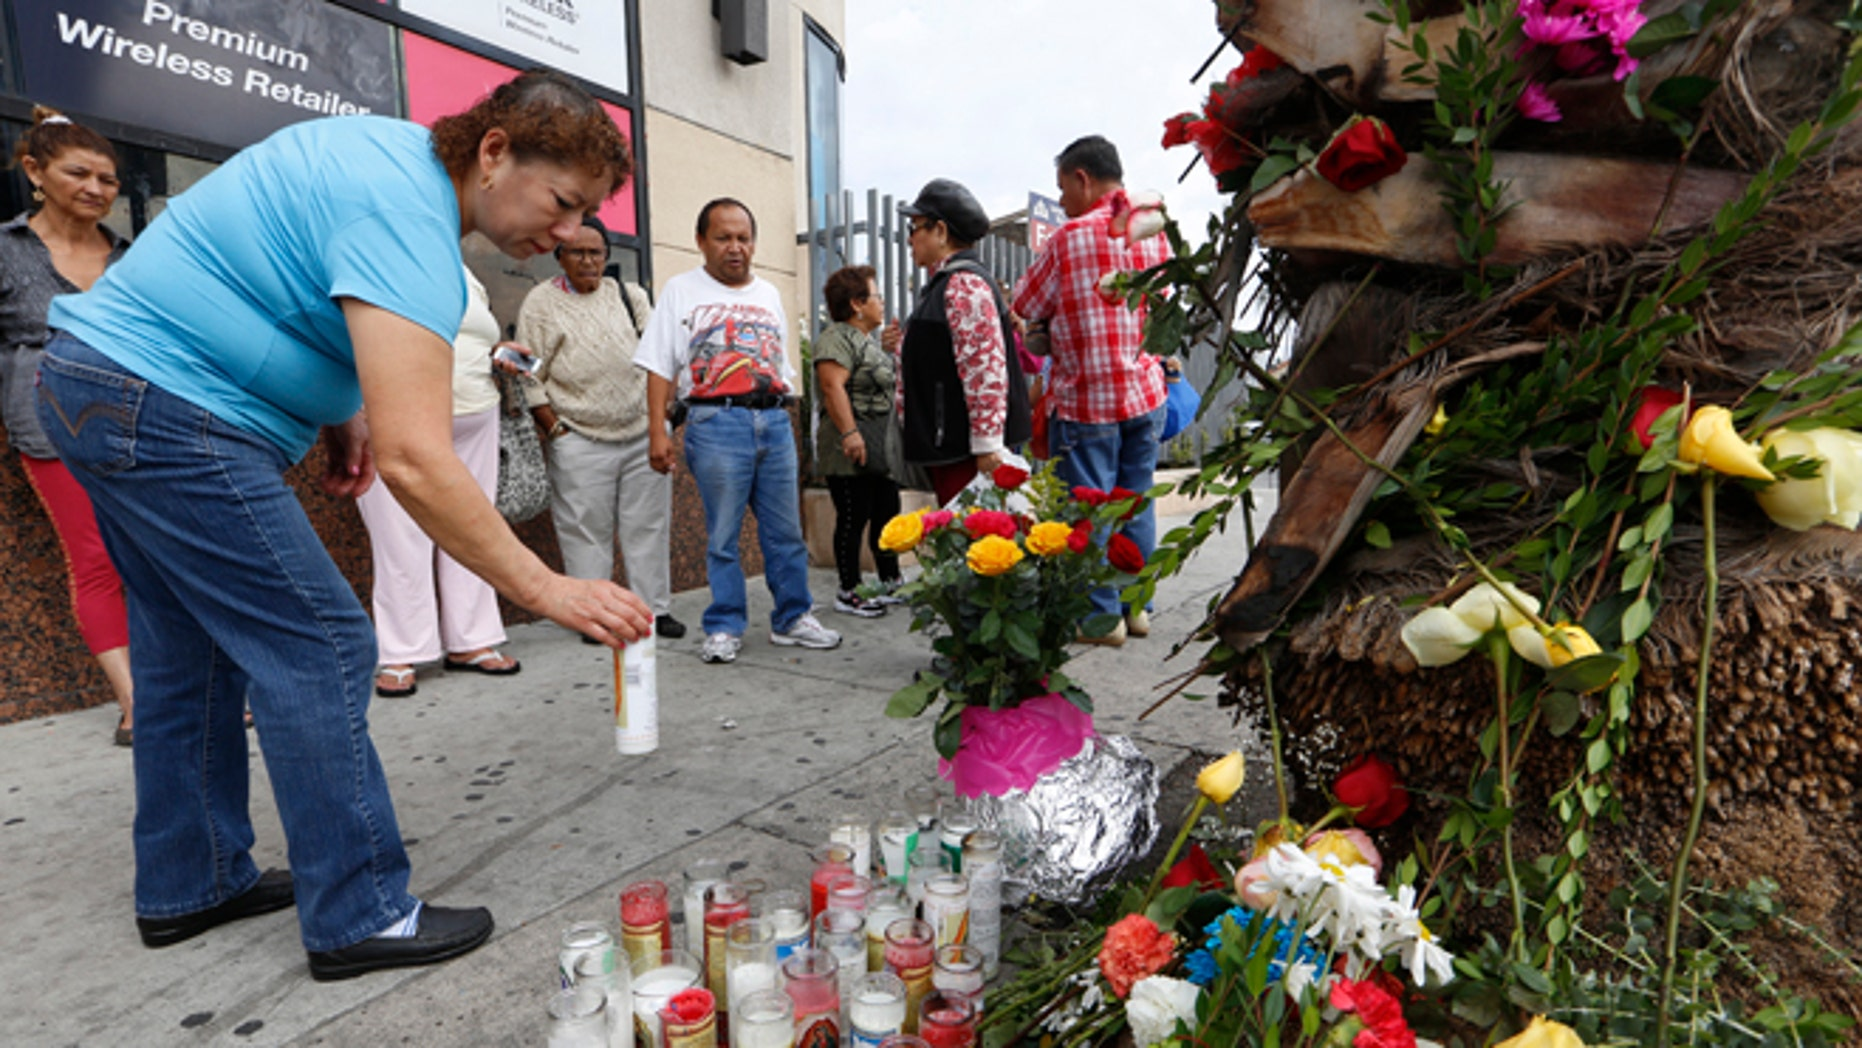 People gather at makeshift memorial at a tour bus stop in Los Angeles, Monday, Oct 24, 2016.